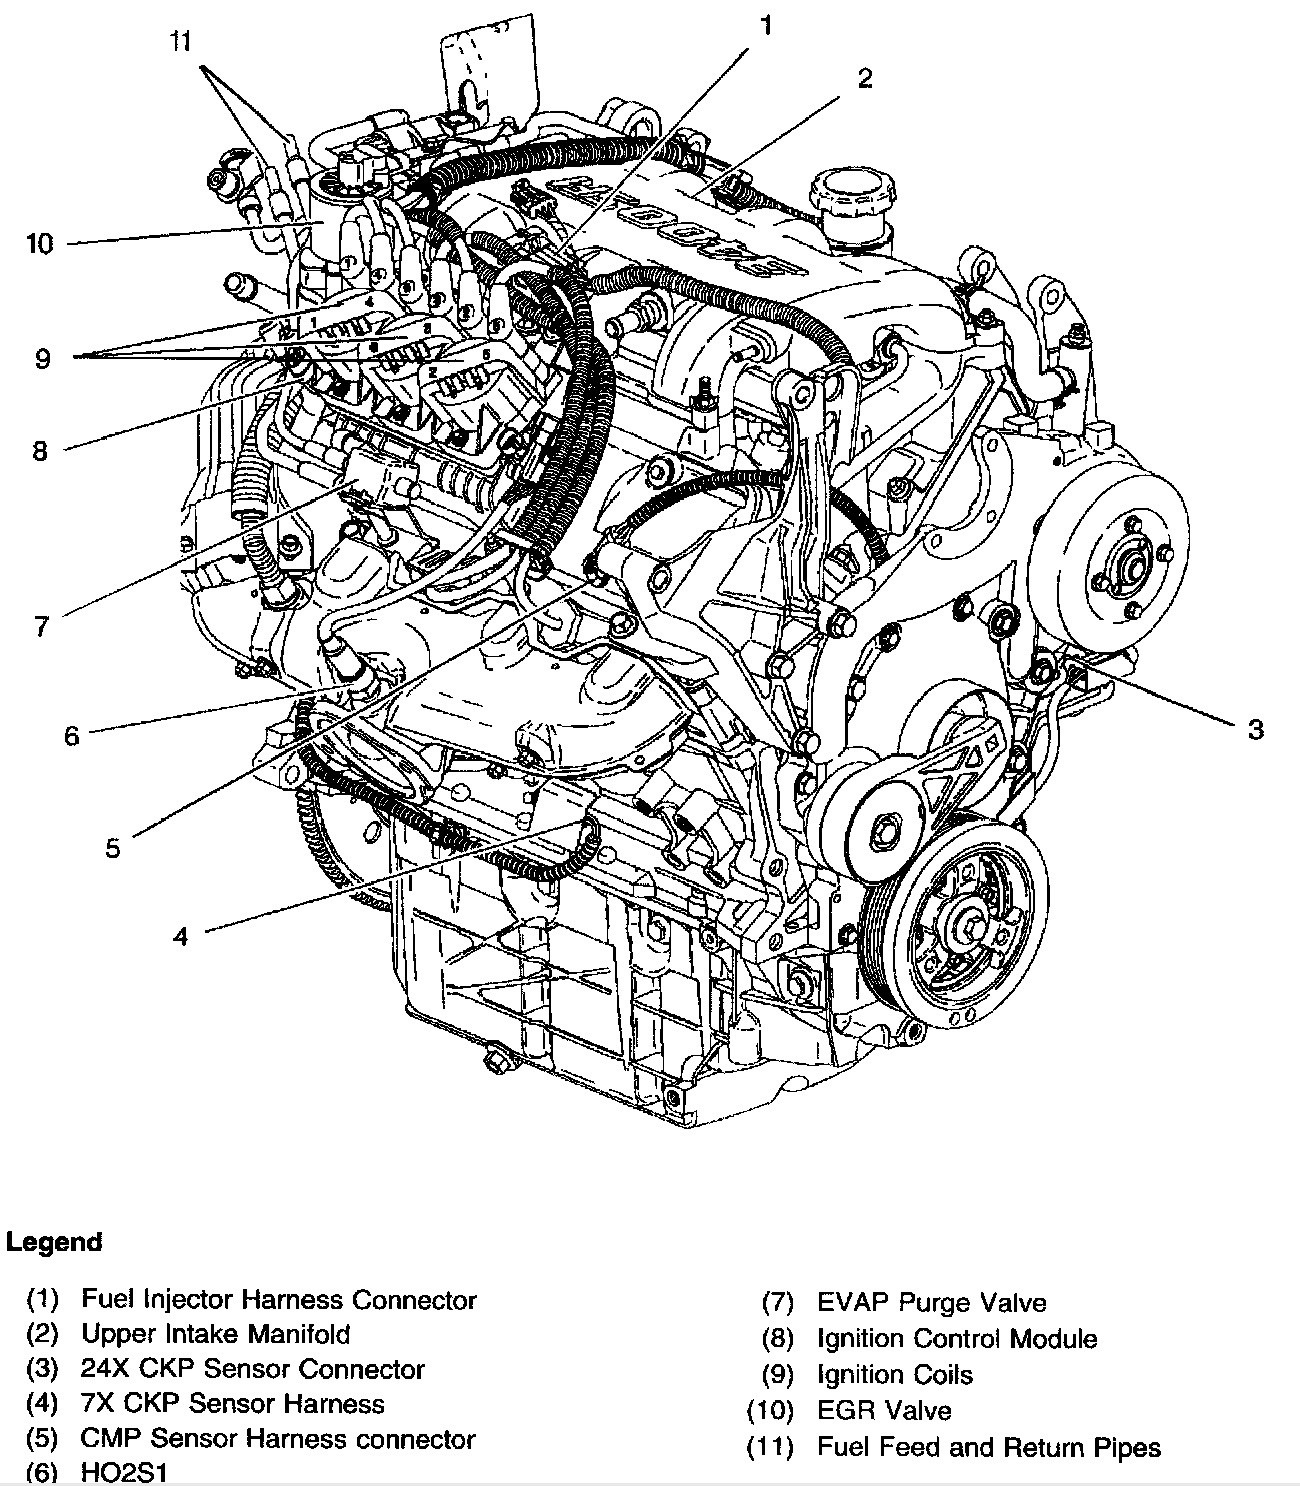 secondary ignition pickup sensor probe schematic diagram diagram  gm 3800 ignition wiring diagram full version hd quality  gm 3800 ignition wiring diagram full